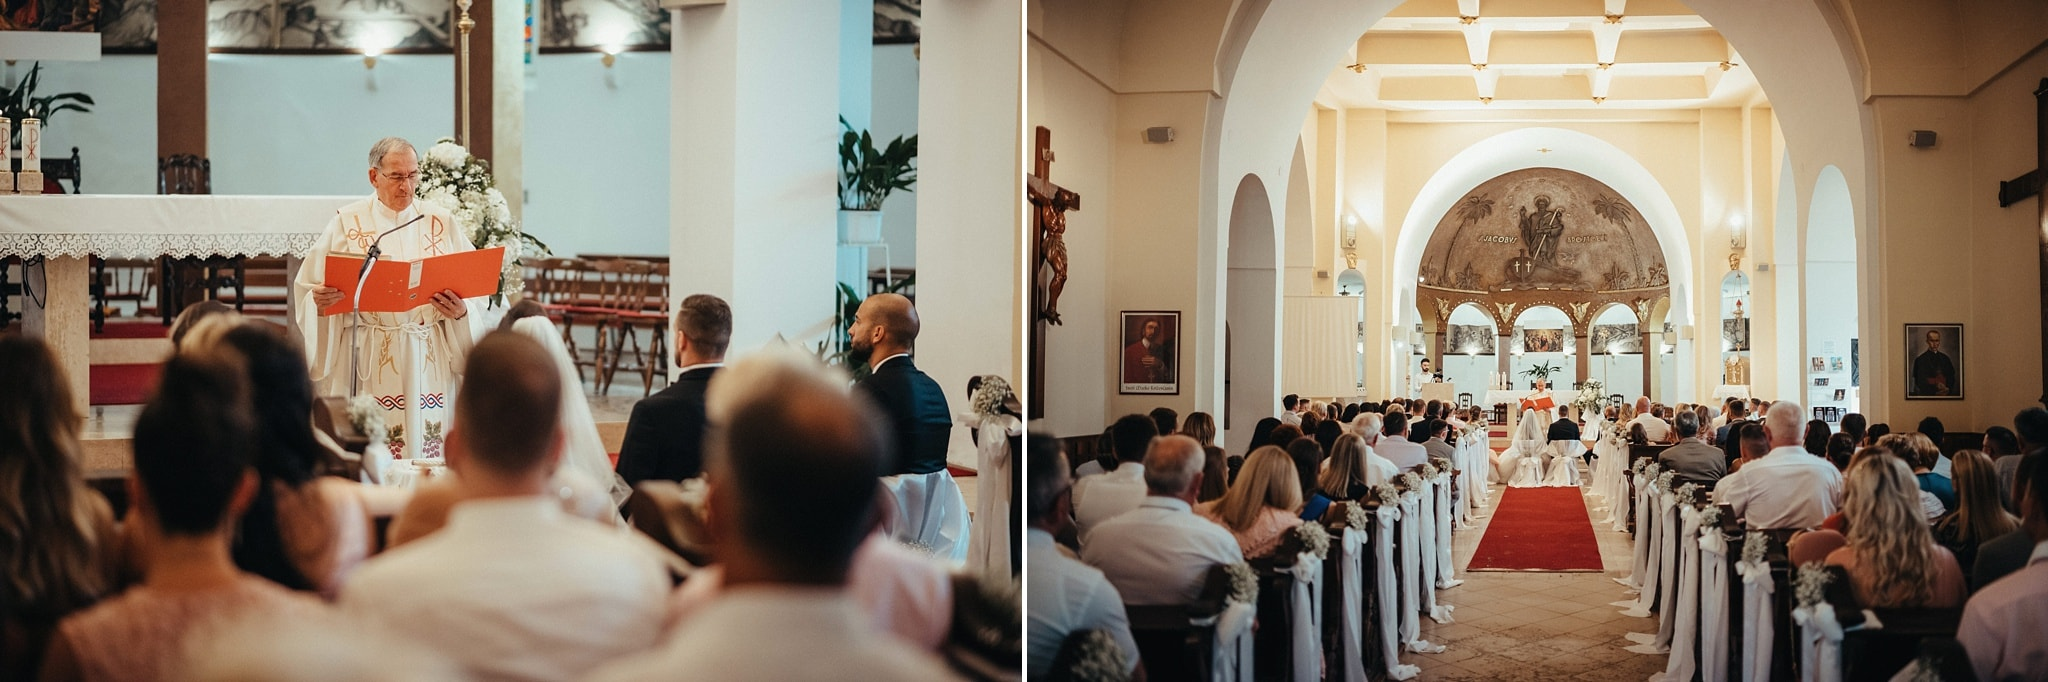 Ceremony at St. Jacob Church Opatija